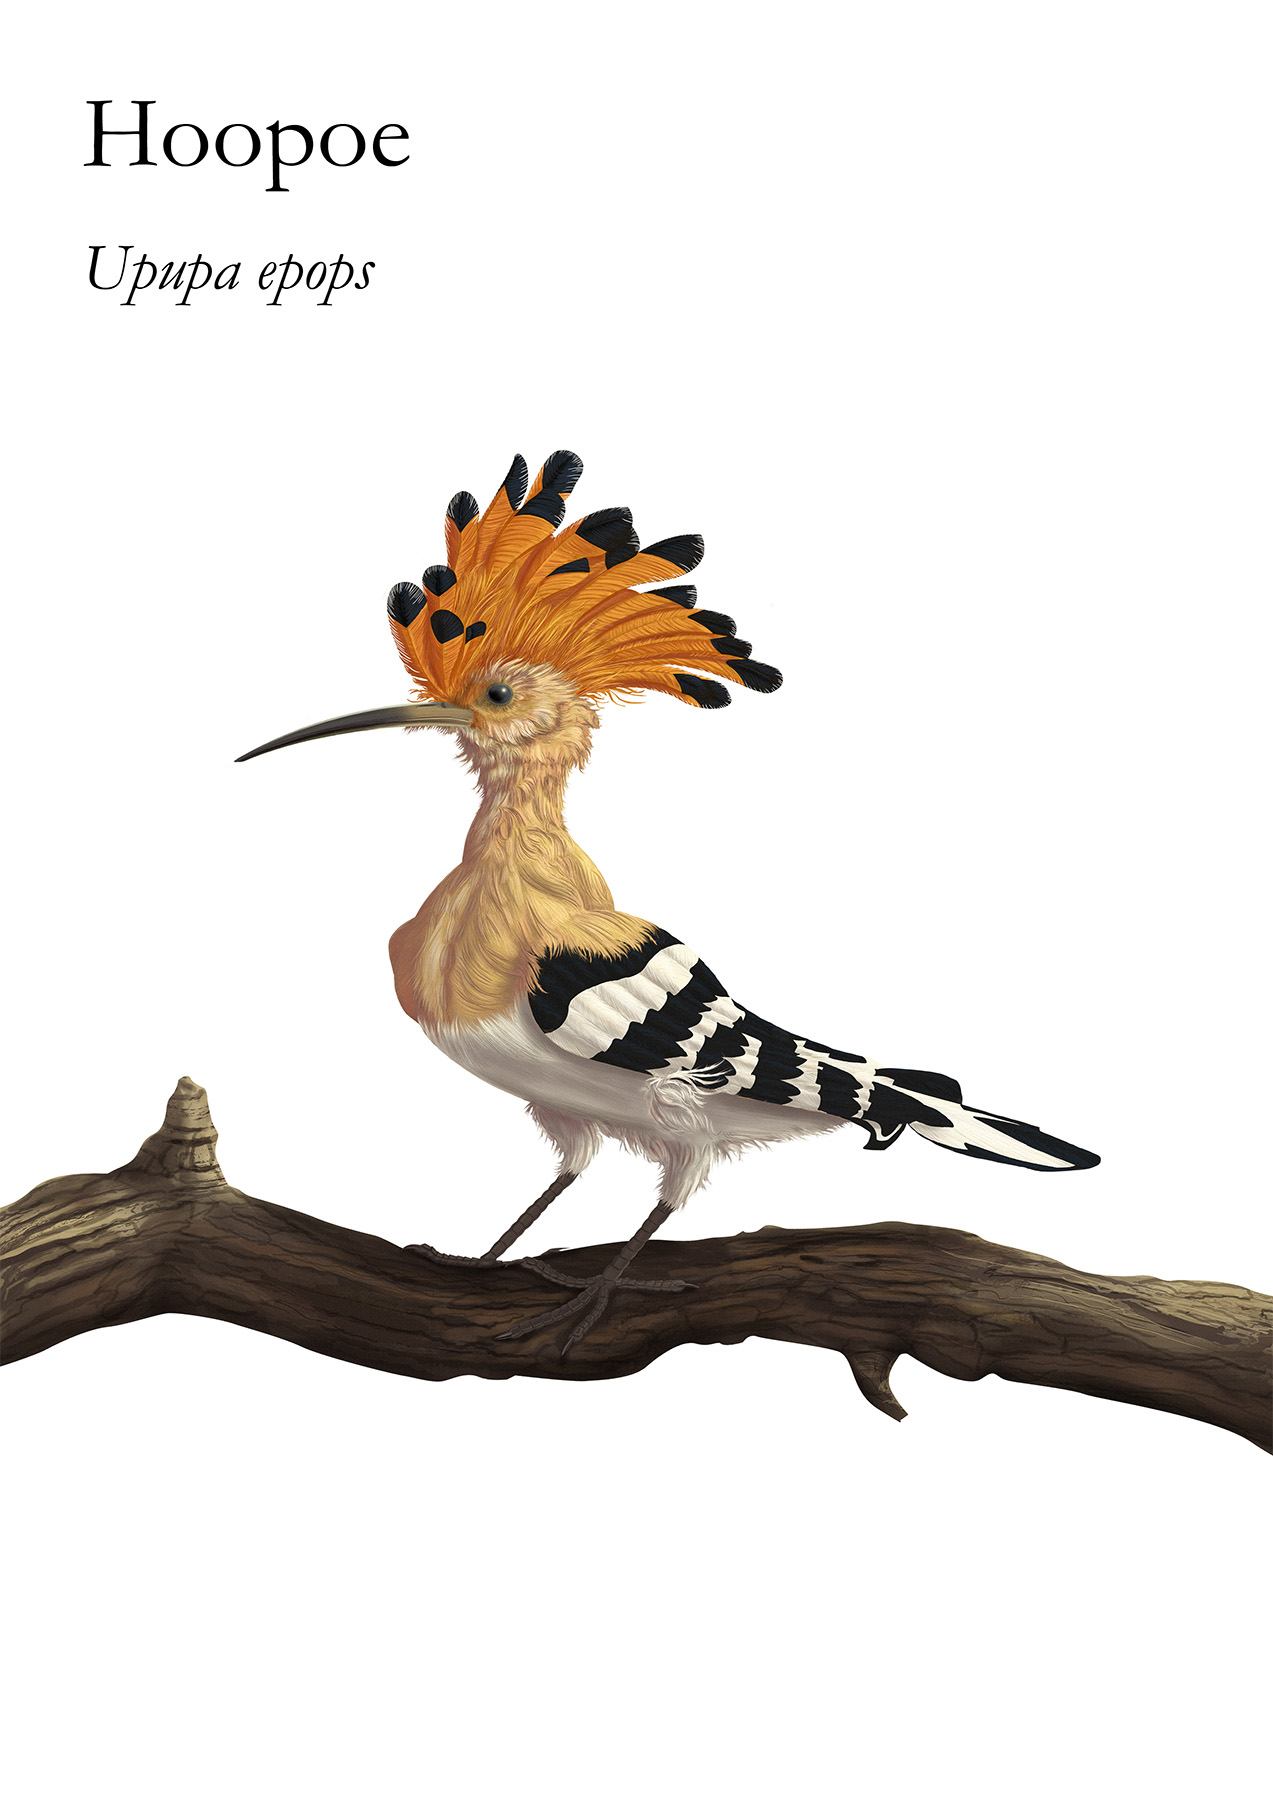 The Hoopoe is a colourful bird found across Afro-Eurasia also called Härfågel